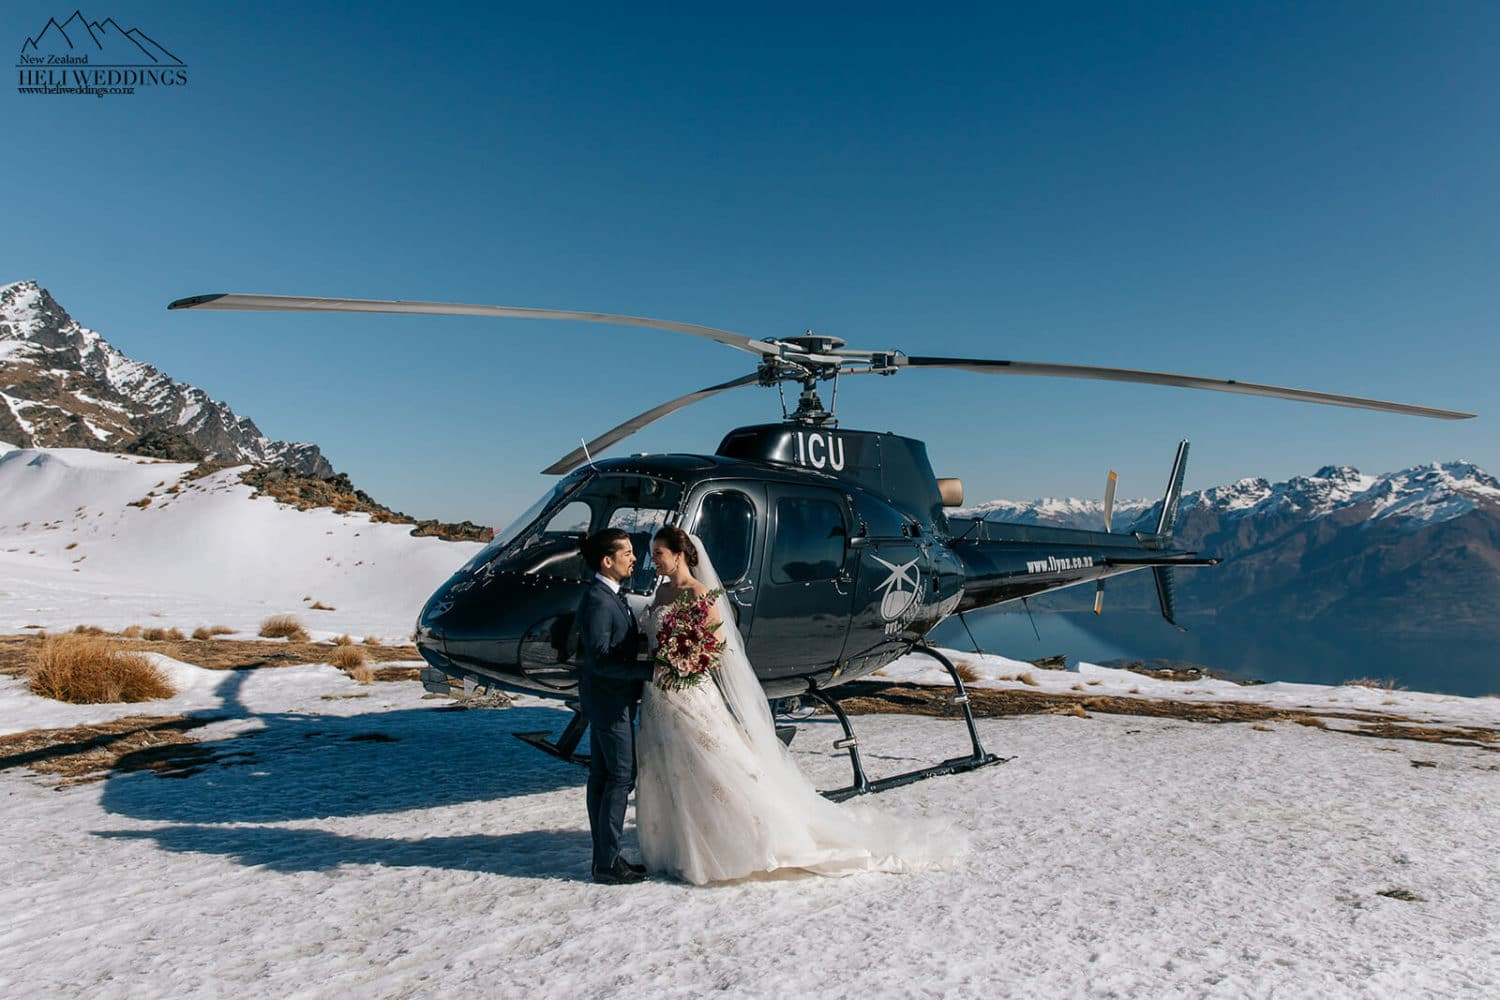 Mountain Wedding by Helicopter in Queenstown